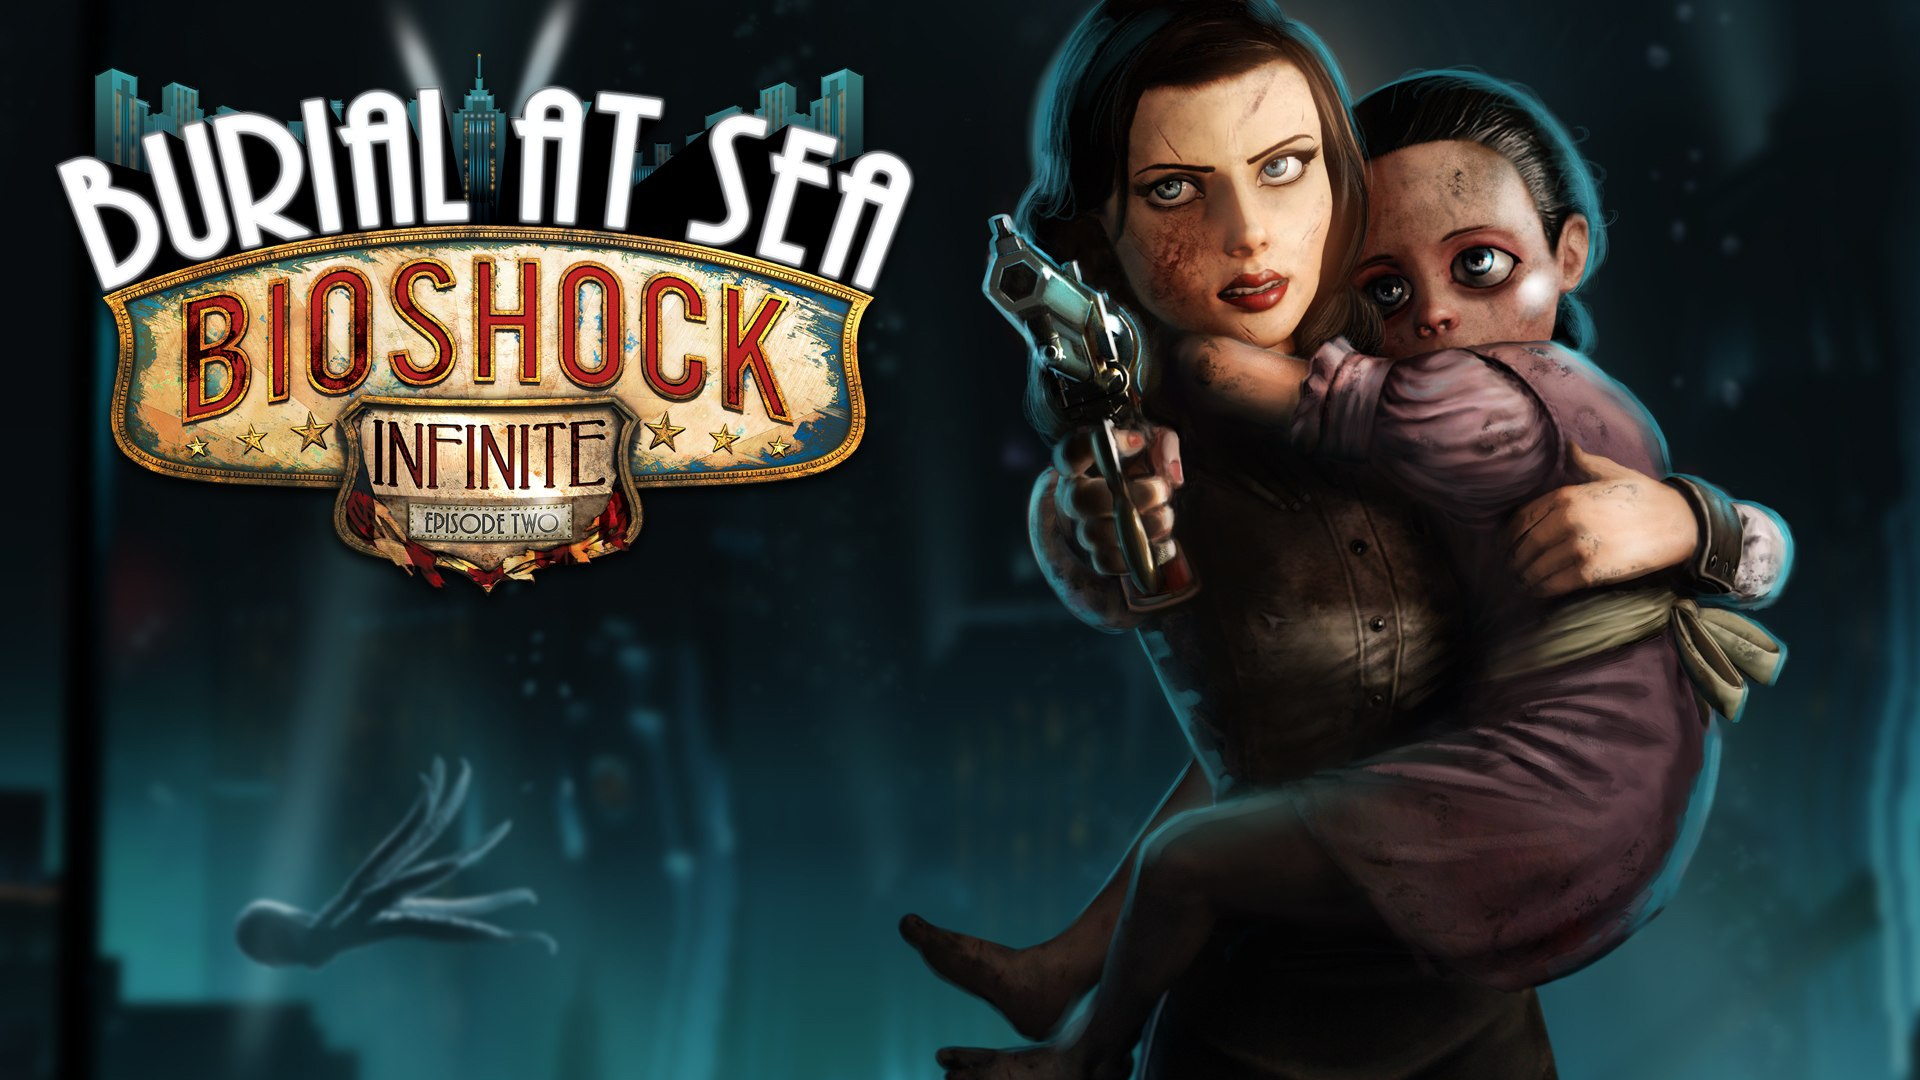 bioshock_infinite_episode_two_burial_at_sea-1920x1080